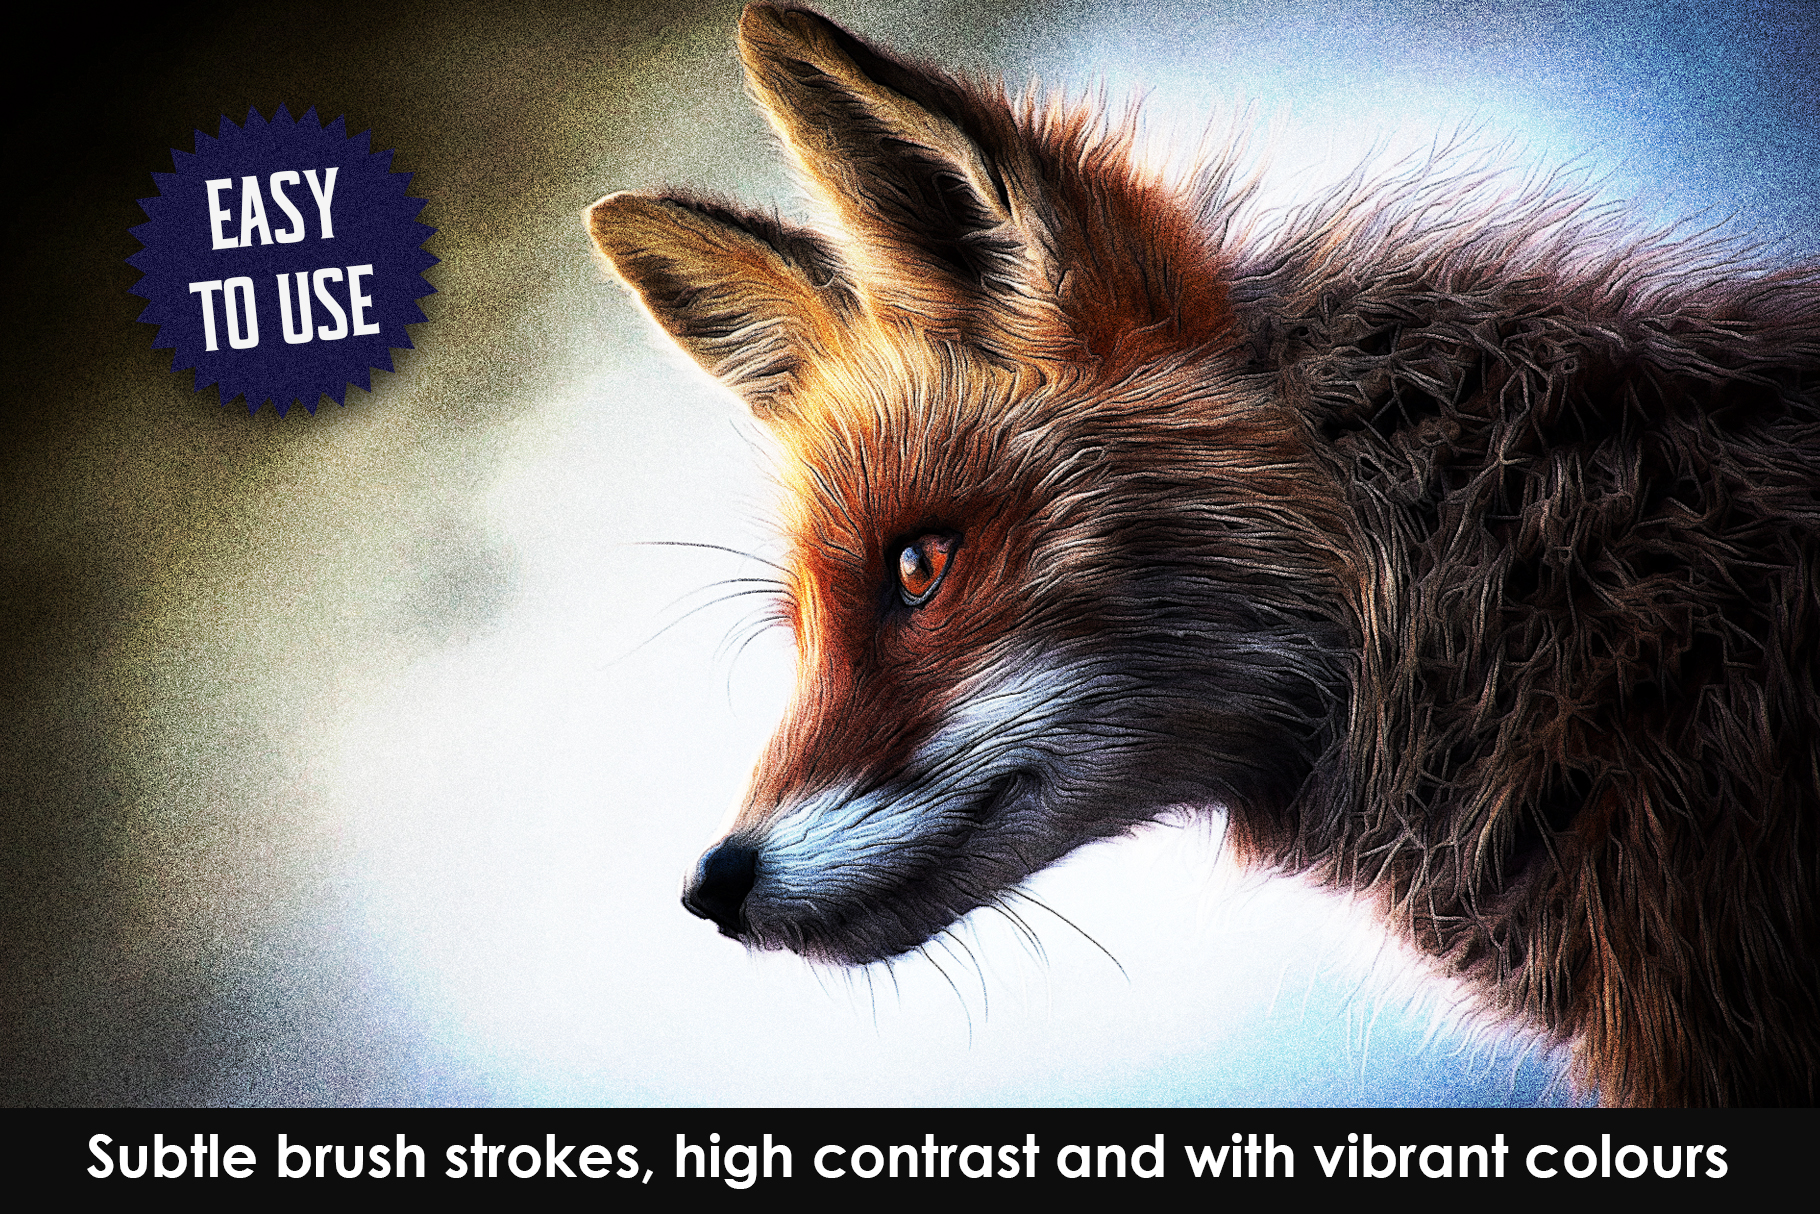 Airbrush Poster Photoshop Action example image 6